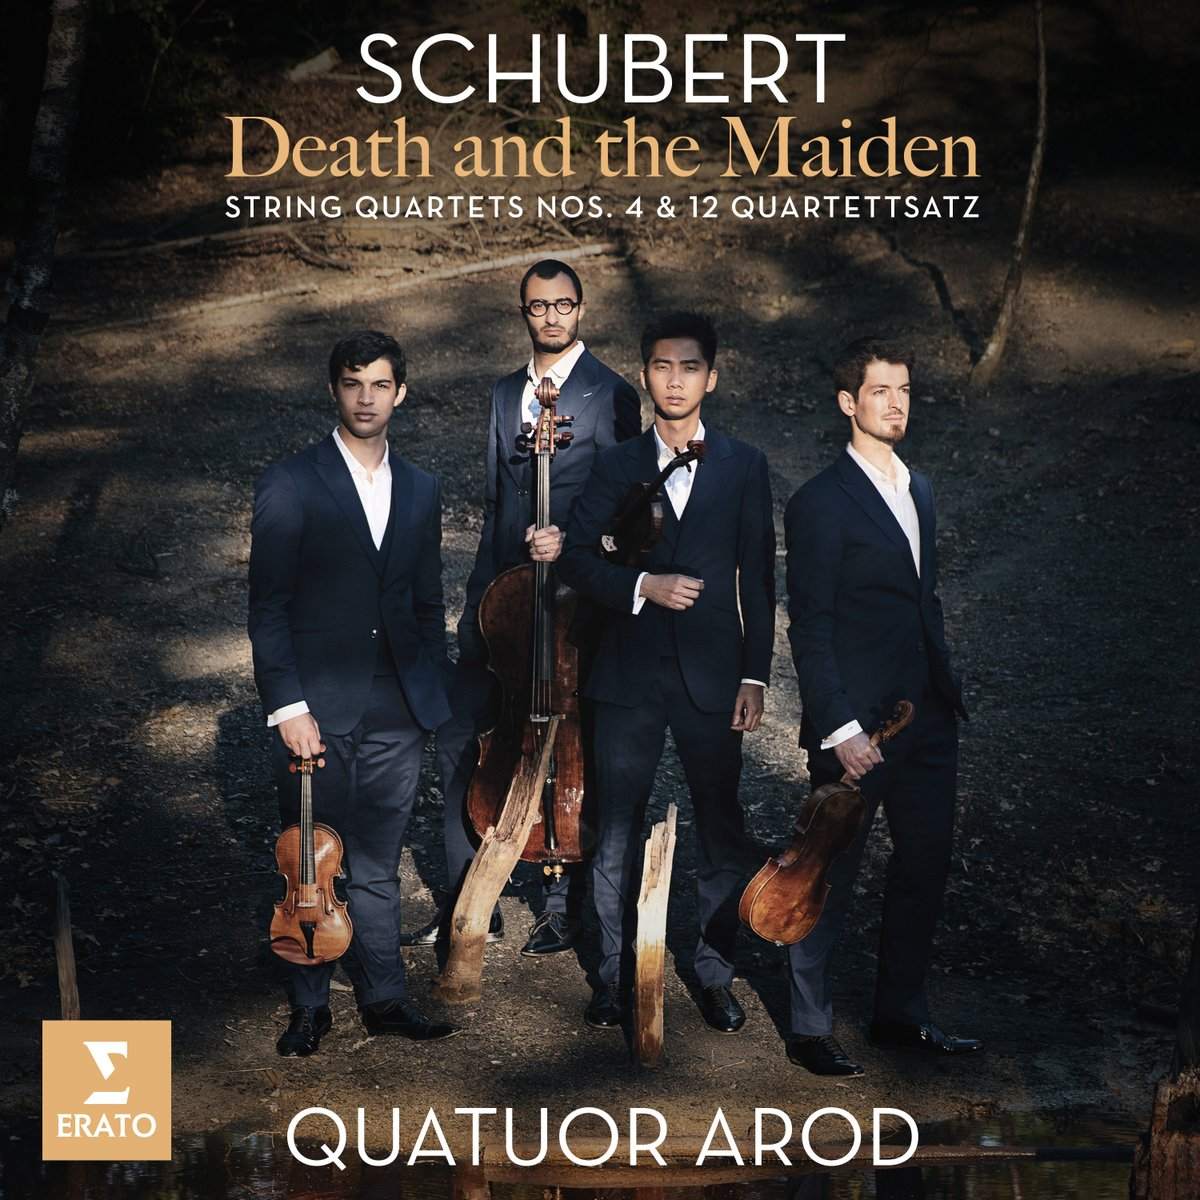 """Schubert's illustrious String Quartet No. 14, """"Death and the Maiden"""", forms the centerpiece of the @Quatuor_Arod's next album, dedicated to this composer 🎻  Discover the first single: https://t.co/5IvDYjRDRa https://t.co/3PBmuD1PCT"""